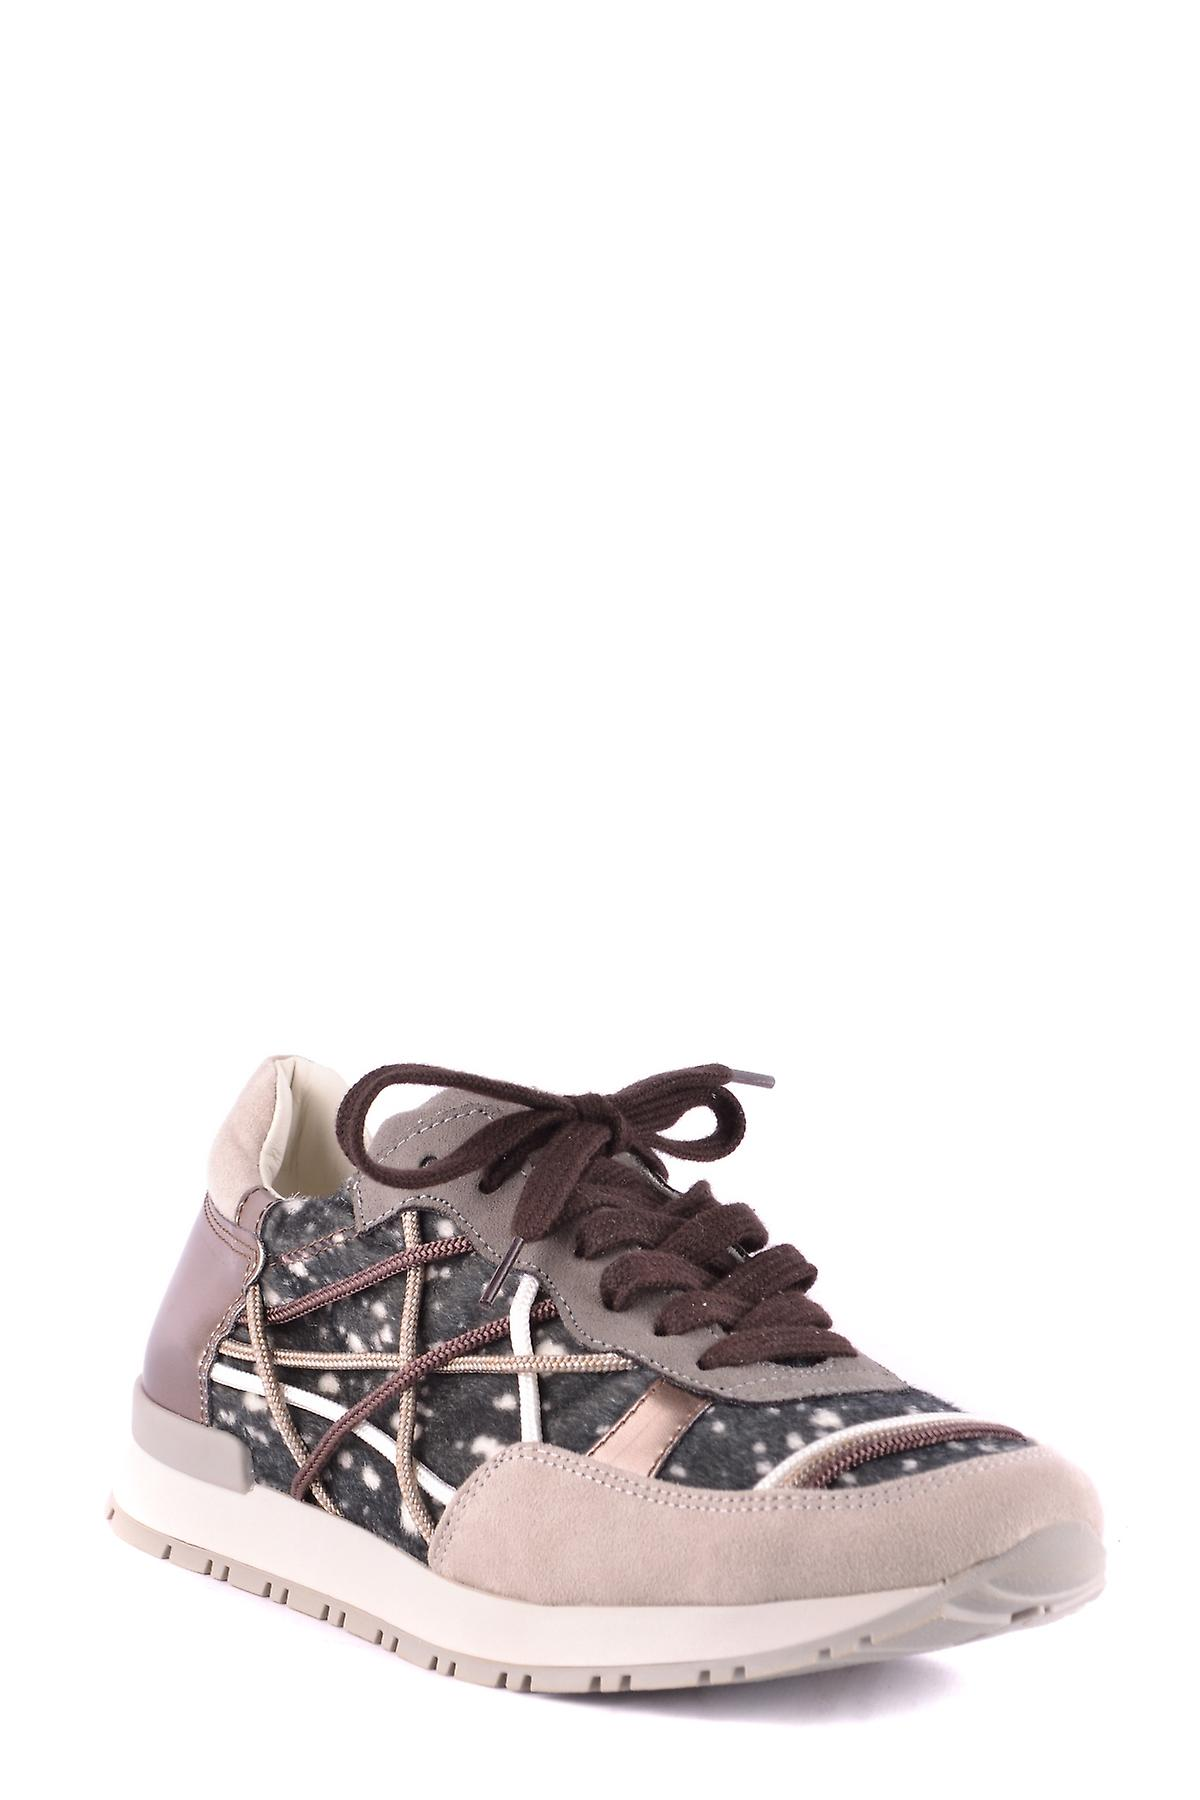 L4k3 Ezbc333002 Women's Multicolor Suede Sneakers